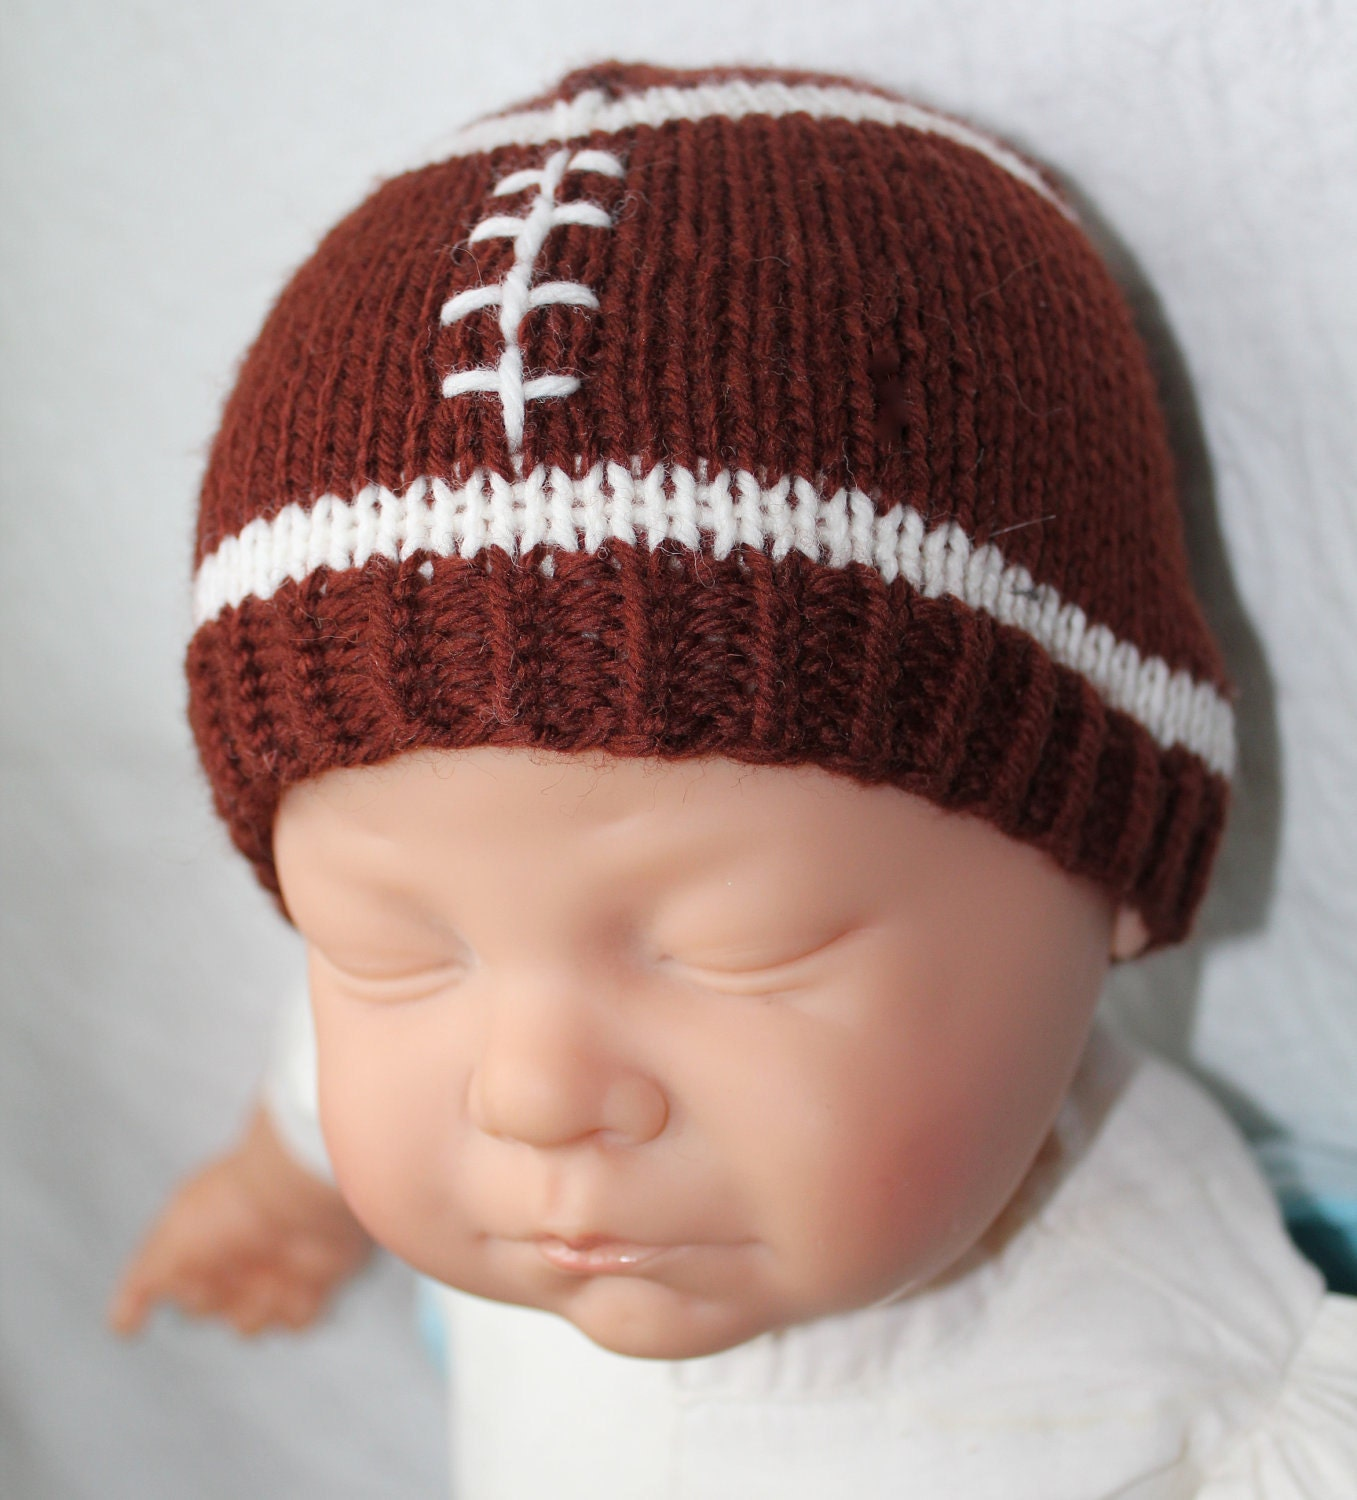 Baby Boy Hat Knitting Pattern : KNITTING PATTERN Football Baby Hat Size 0 to 3 and 6 to 12